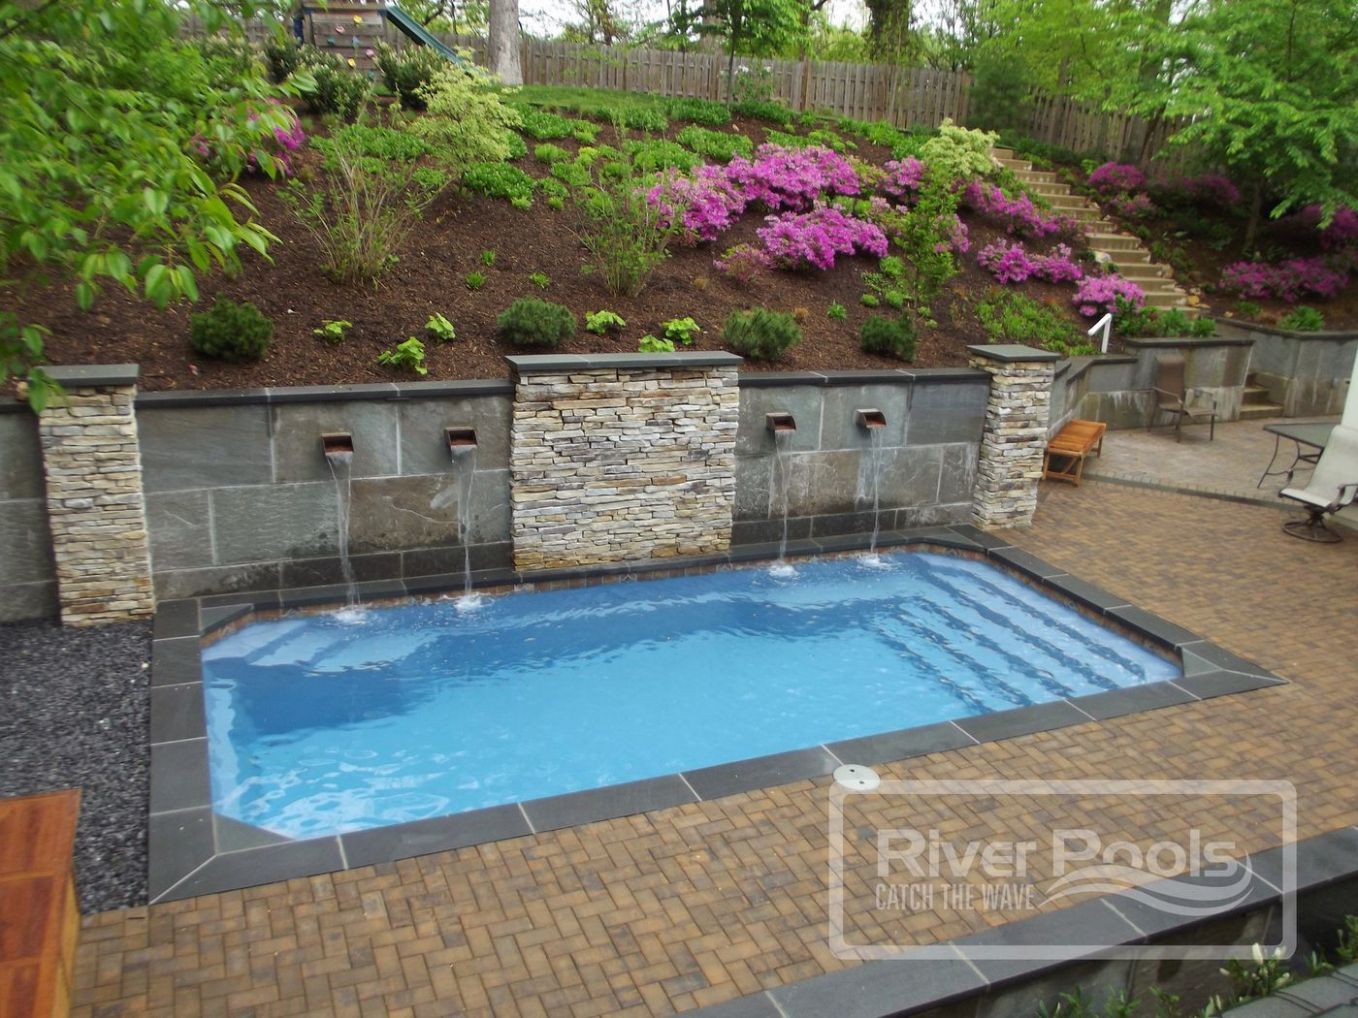 Pool Retaining Walls for Sloped Yards: Cost, Materials, and More - pool ideas on a slope